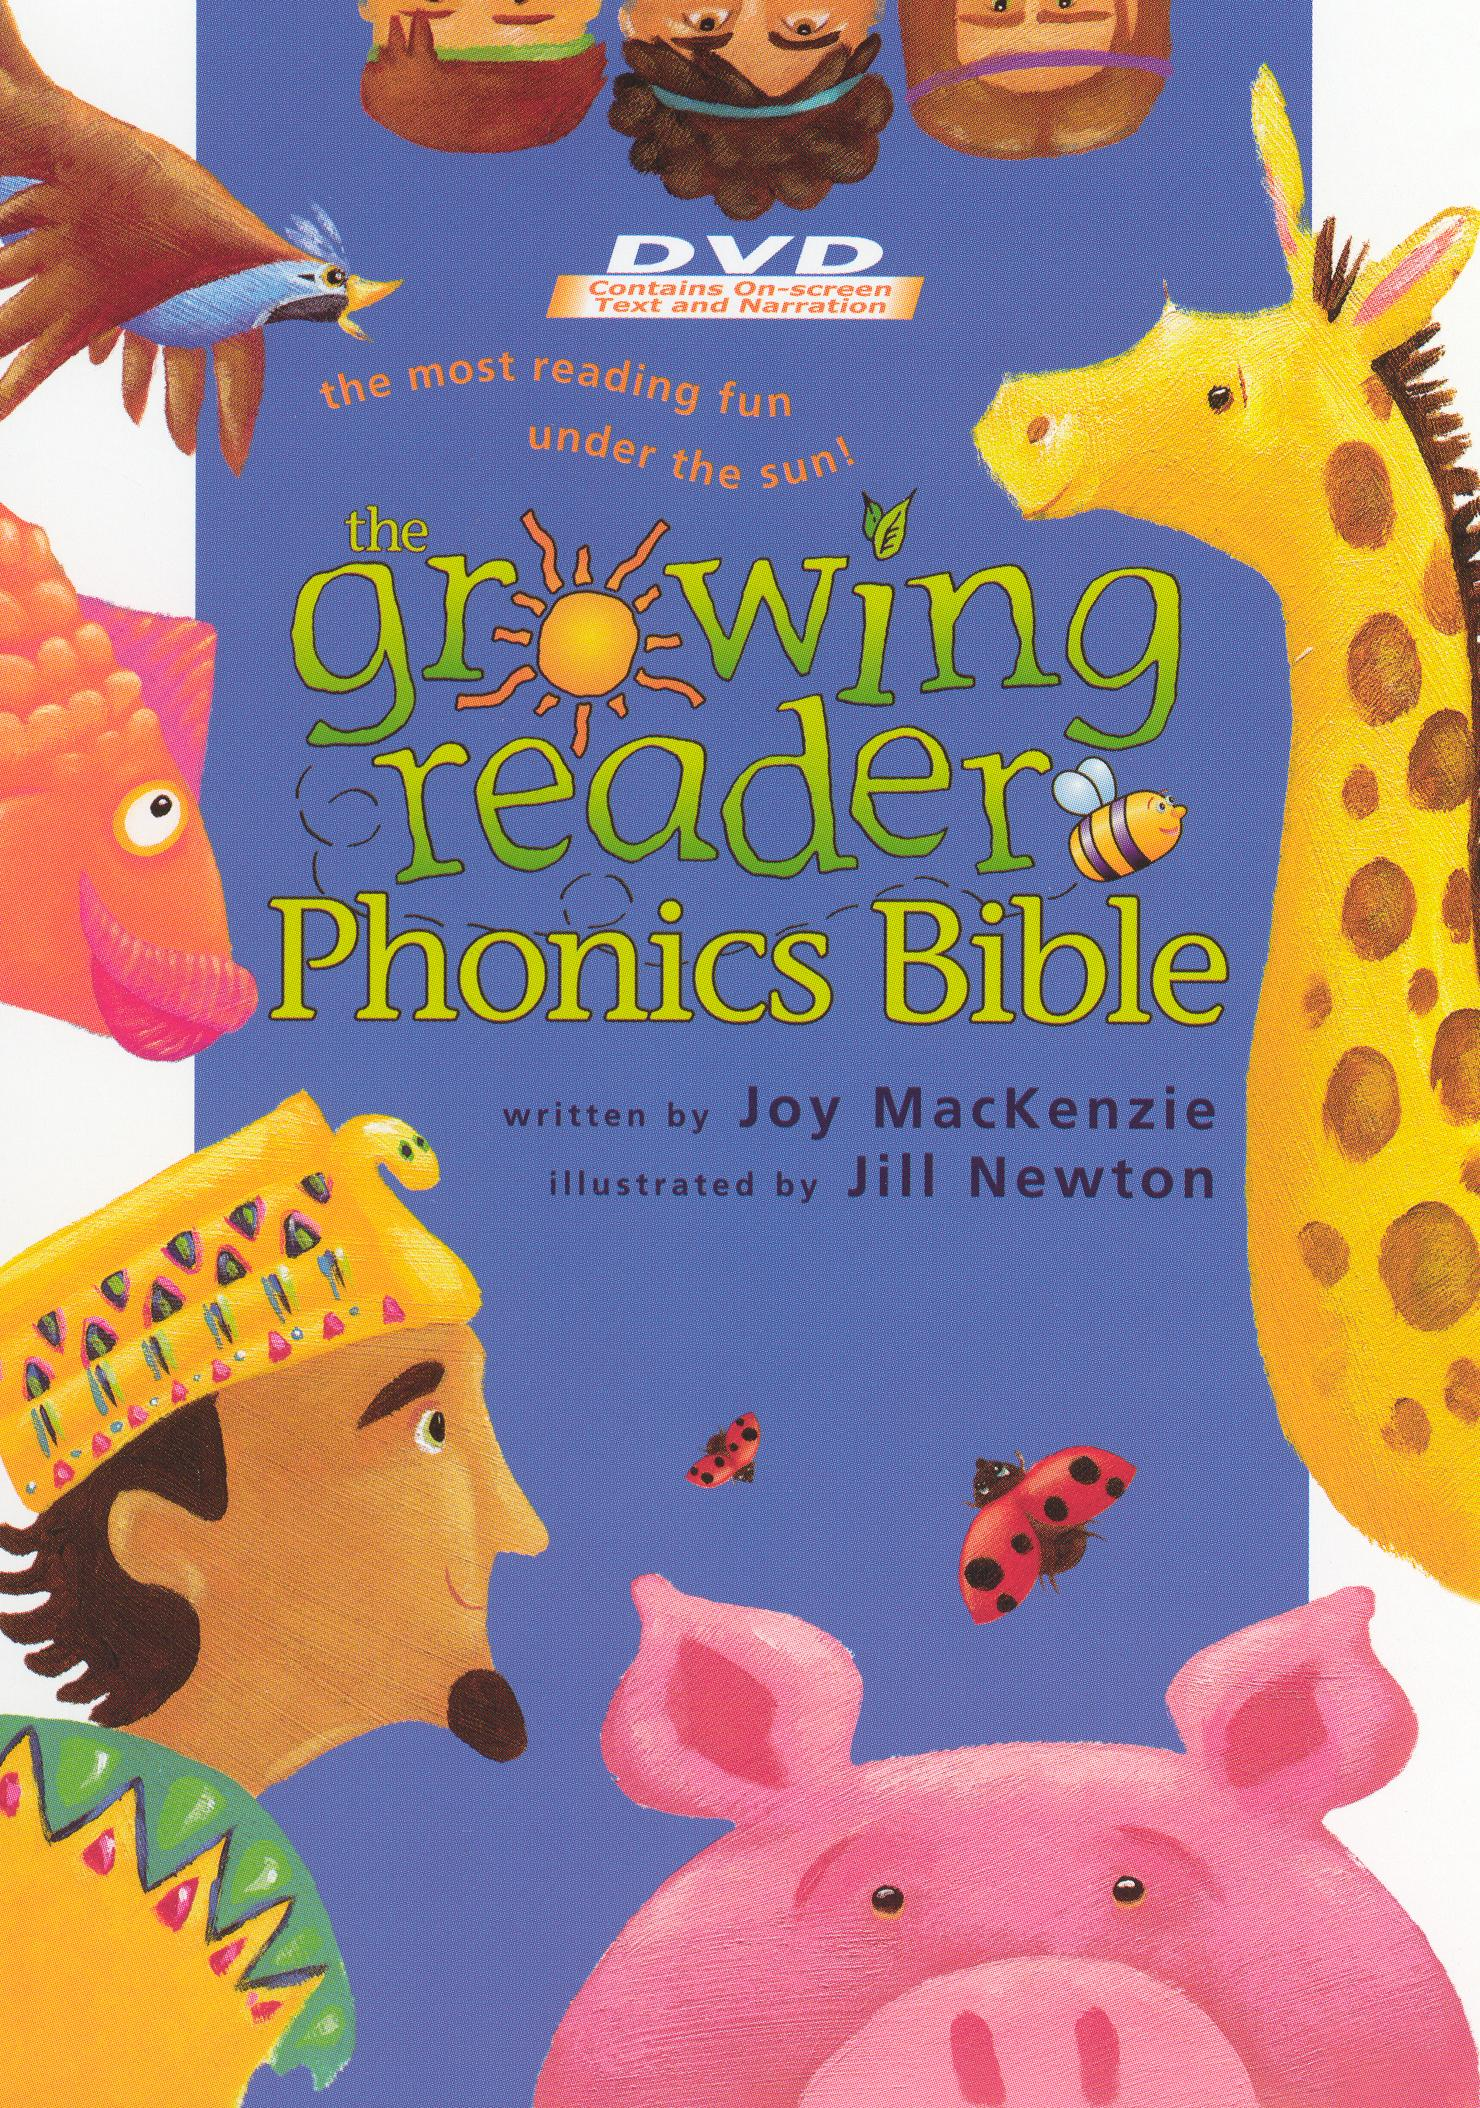 Growing Reader Phonics: The Bible on DVD